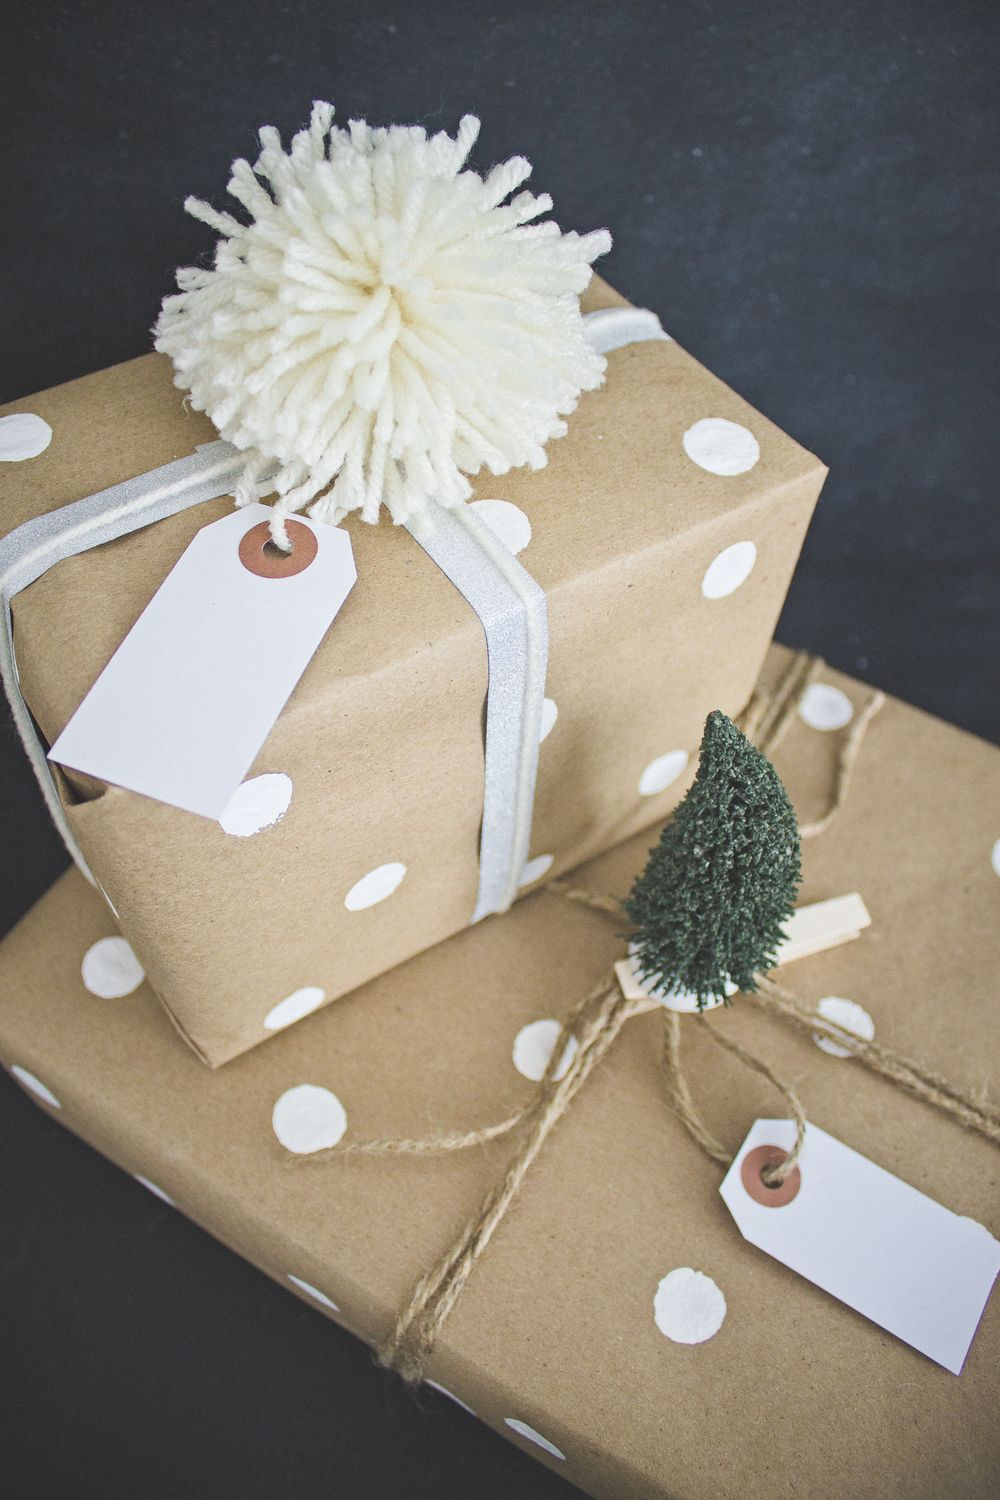 Pin by Rezaul Haque on Gift Wrapping ideas & Inspiration | Pinterest ...